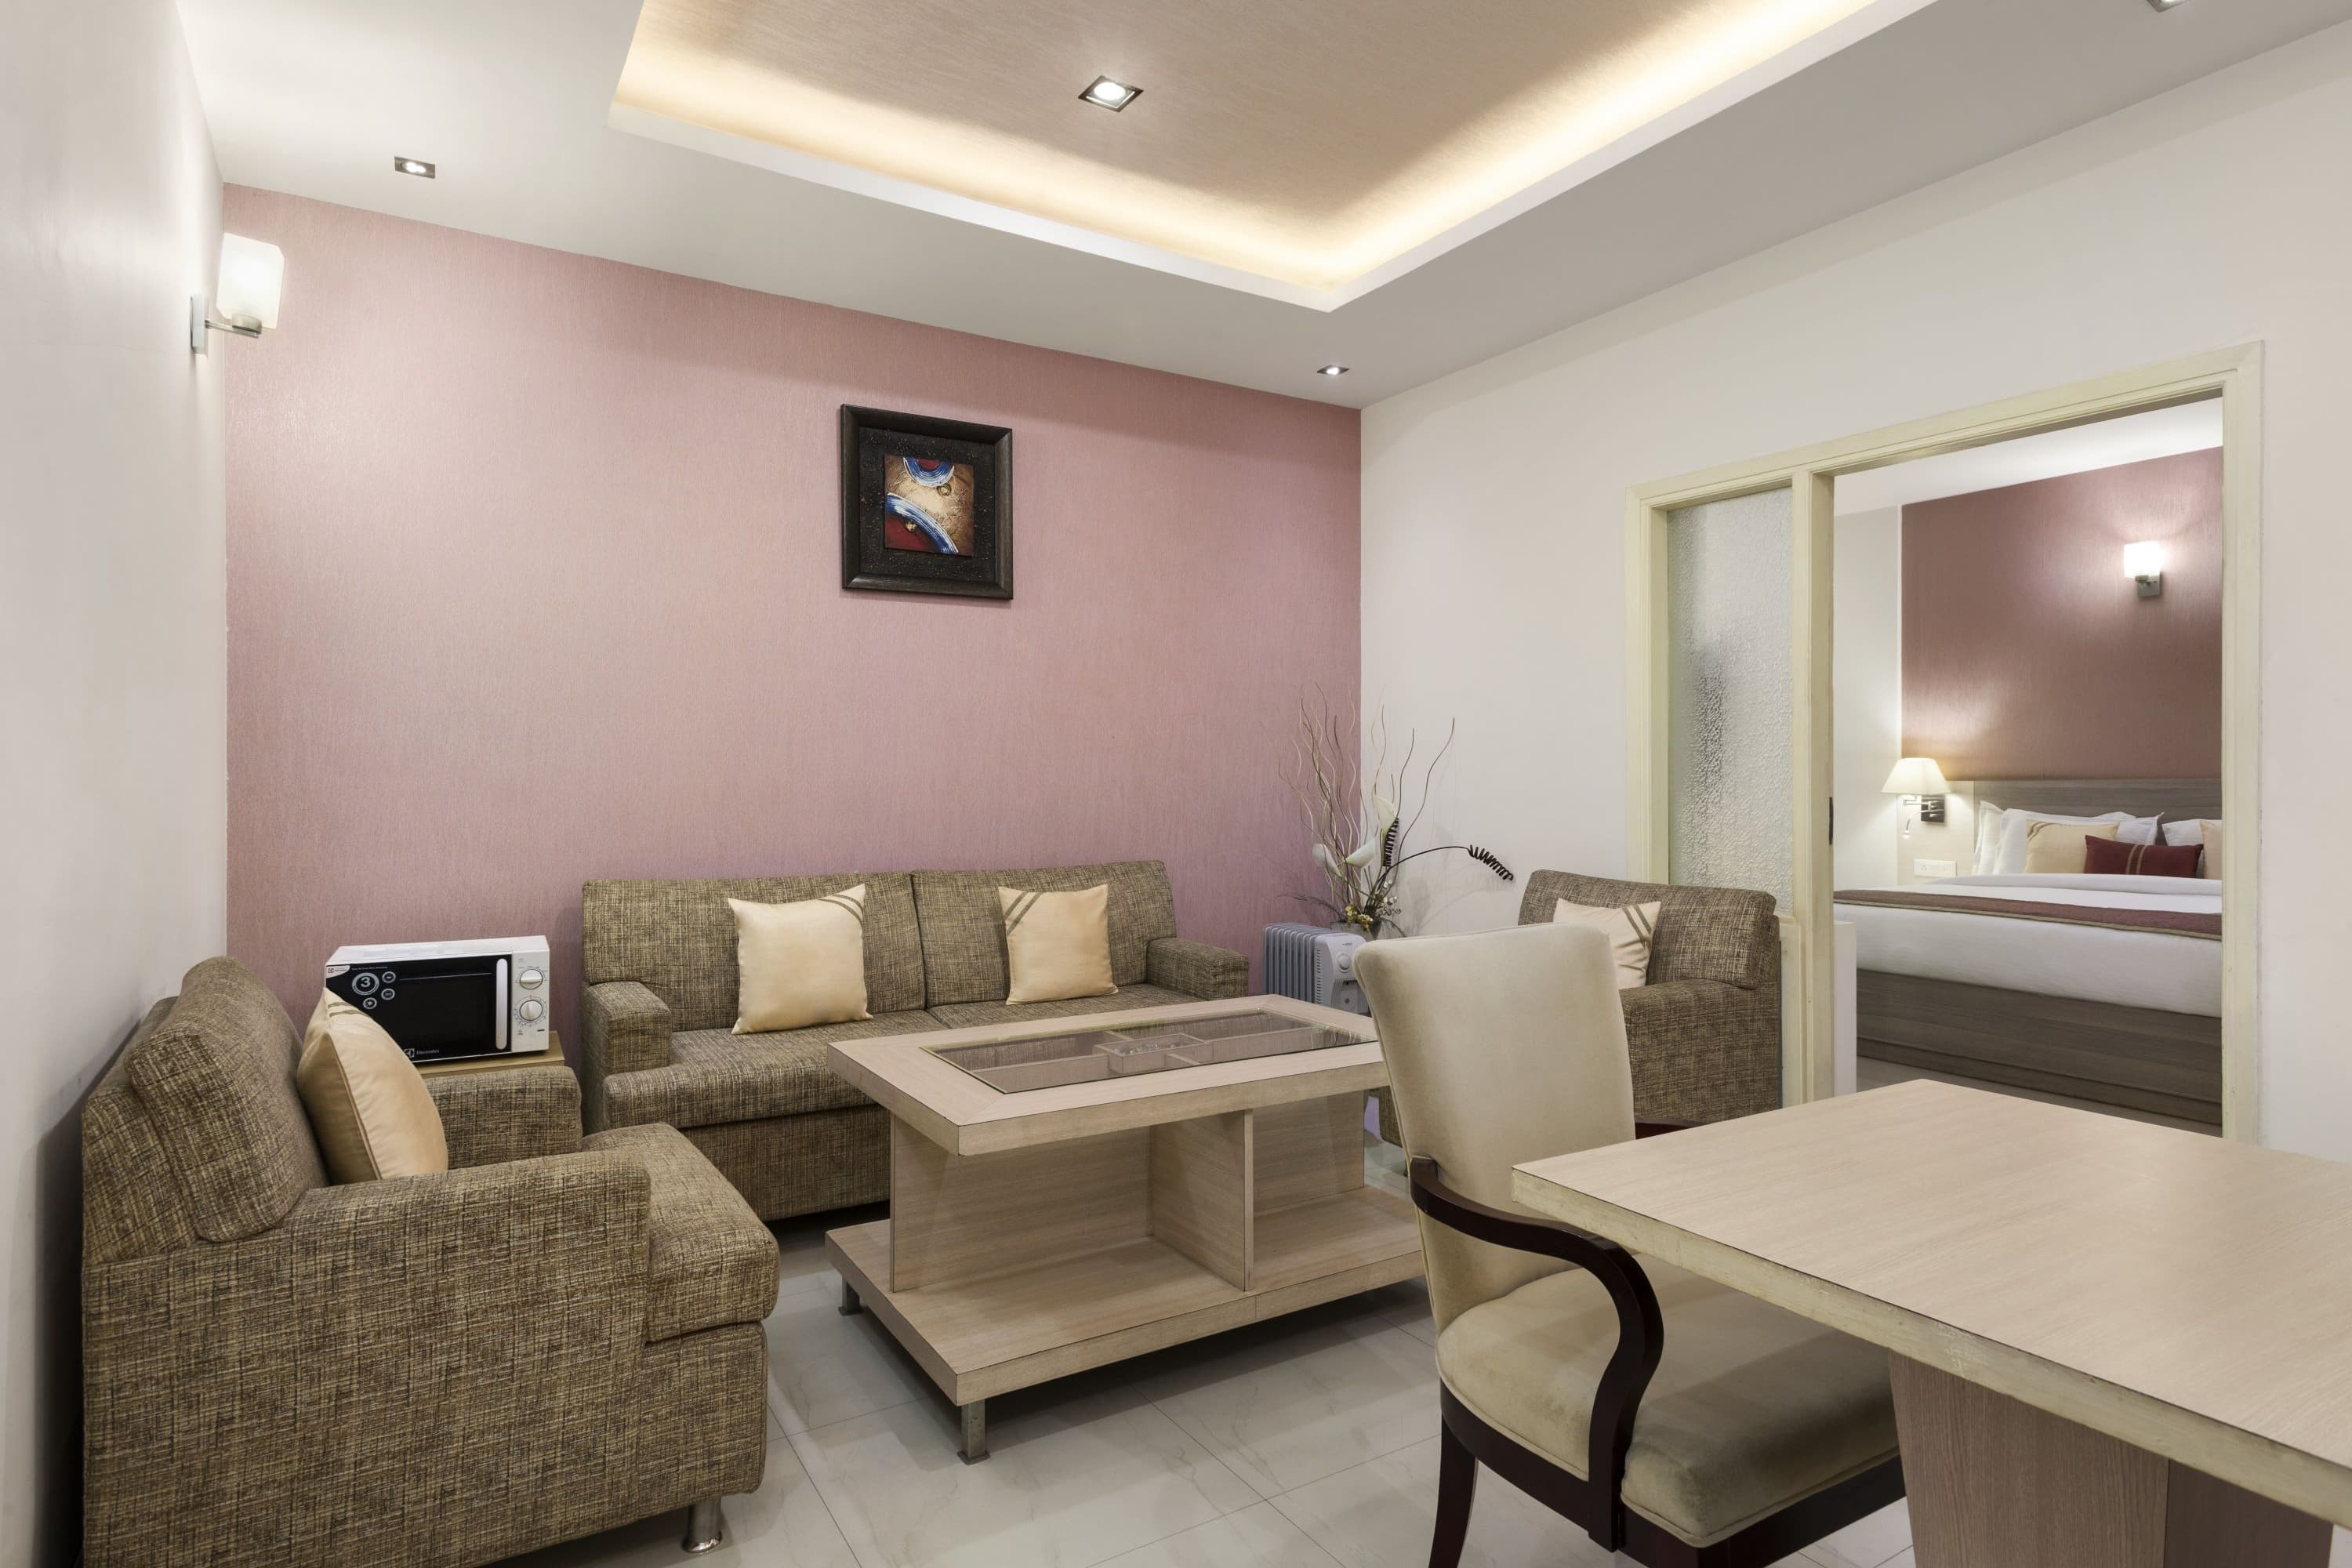 Days Hotel Neemrana Jaipur Highway suite in Shahjahanpur, Other than US/Canada